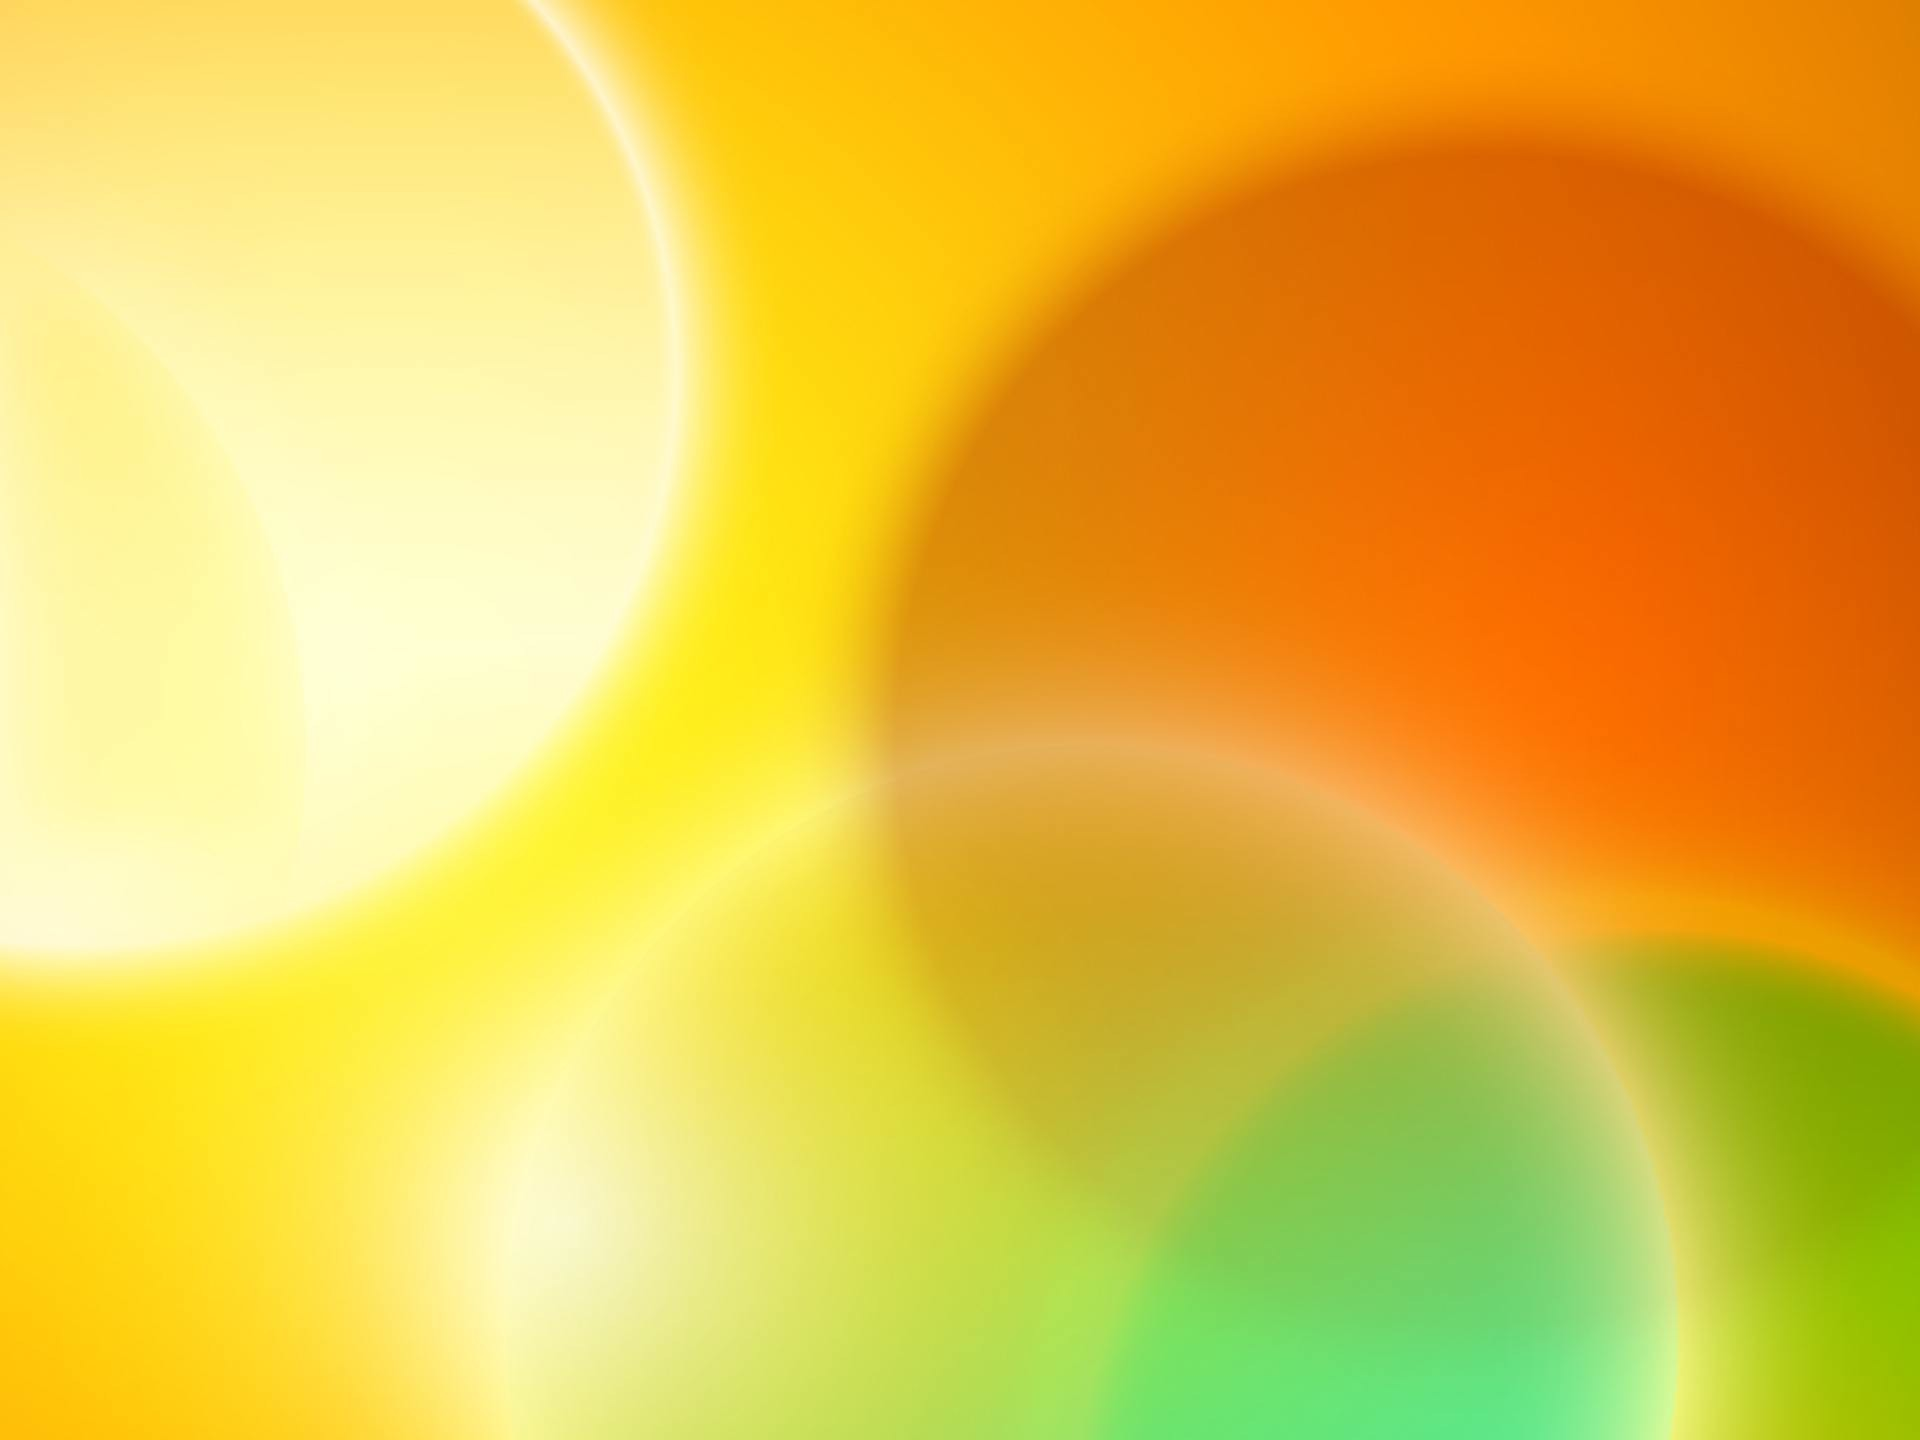 Light Colored Backgrounds For Powerpoint | Latest Laptop Wallpaper